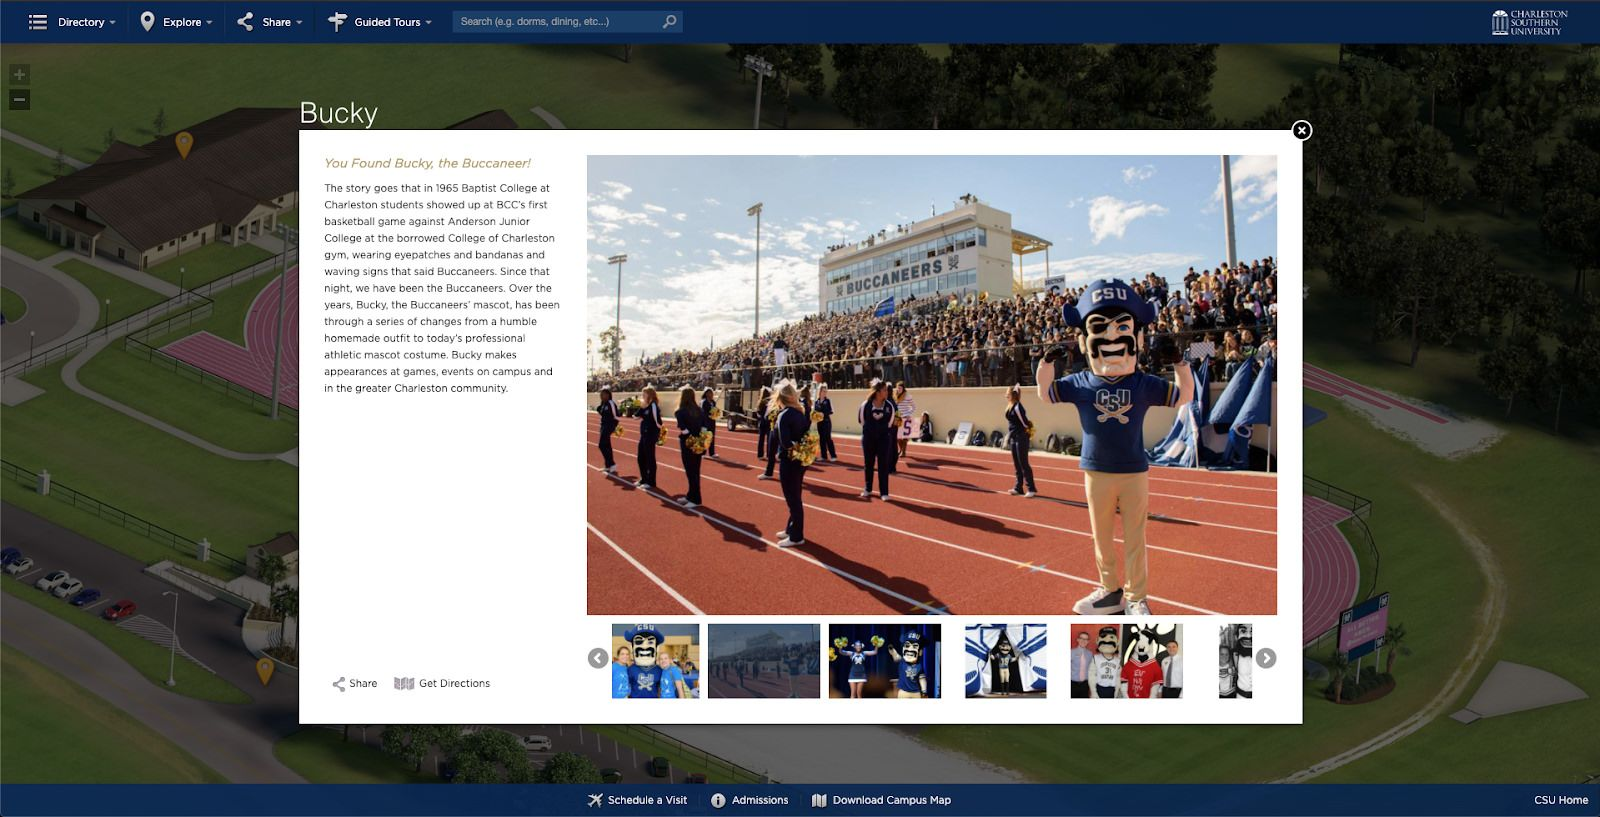 Charleston Southern University posts an image of cheerleaders and their mascot on the track with a cheering crowd of college students behind them.